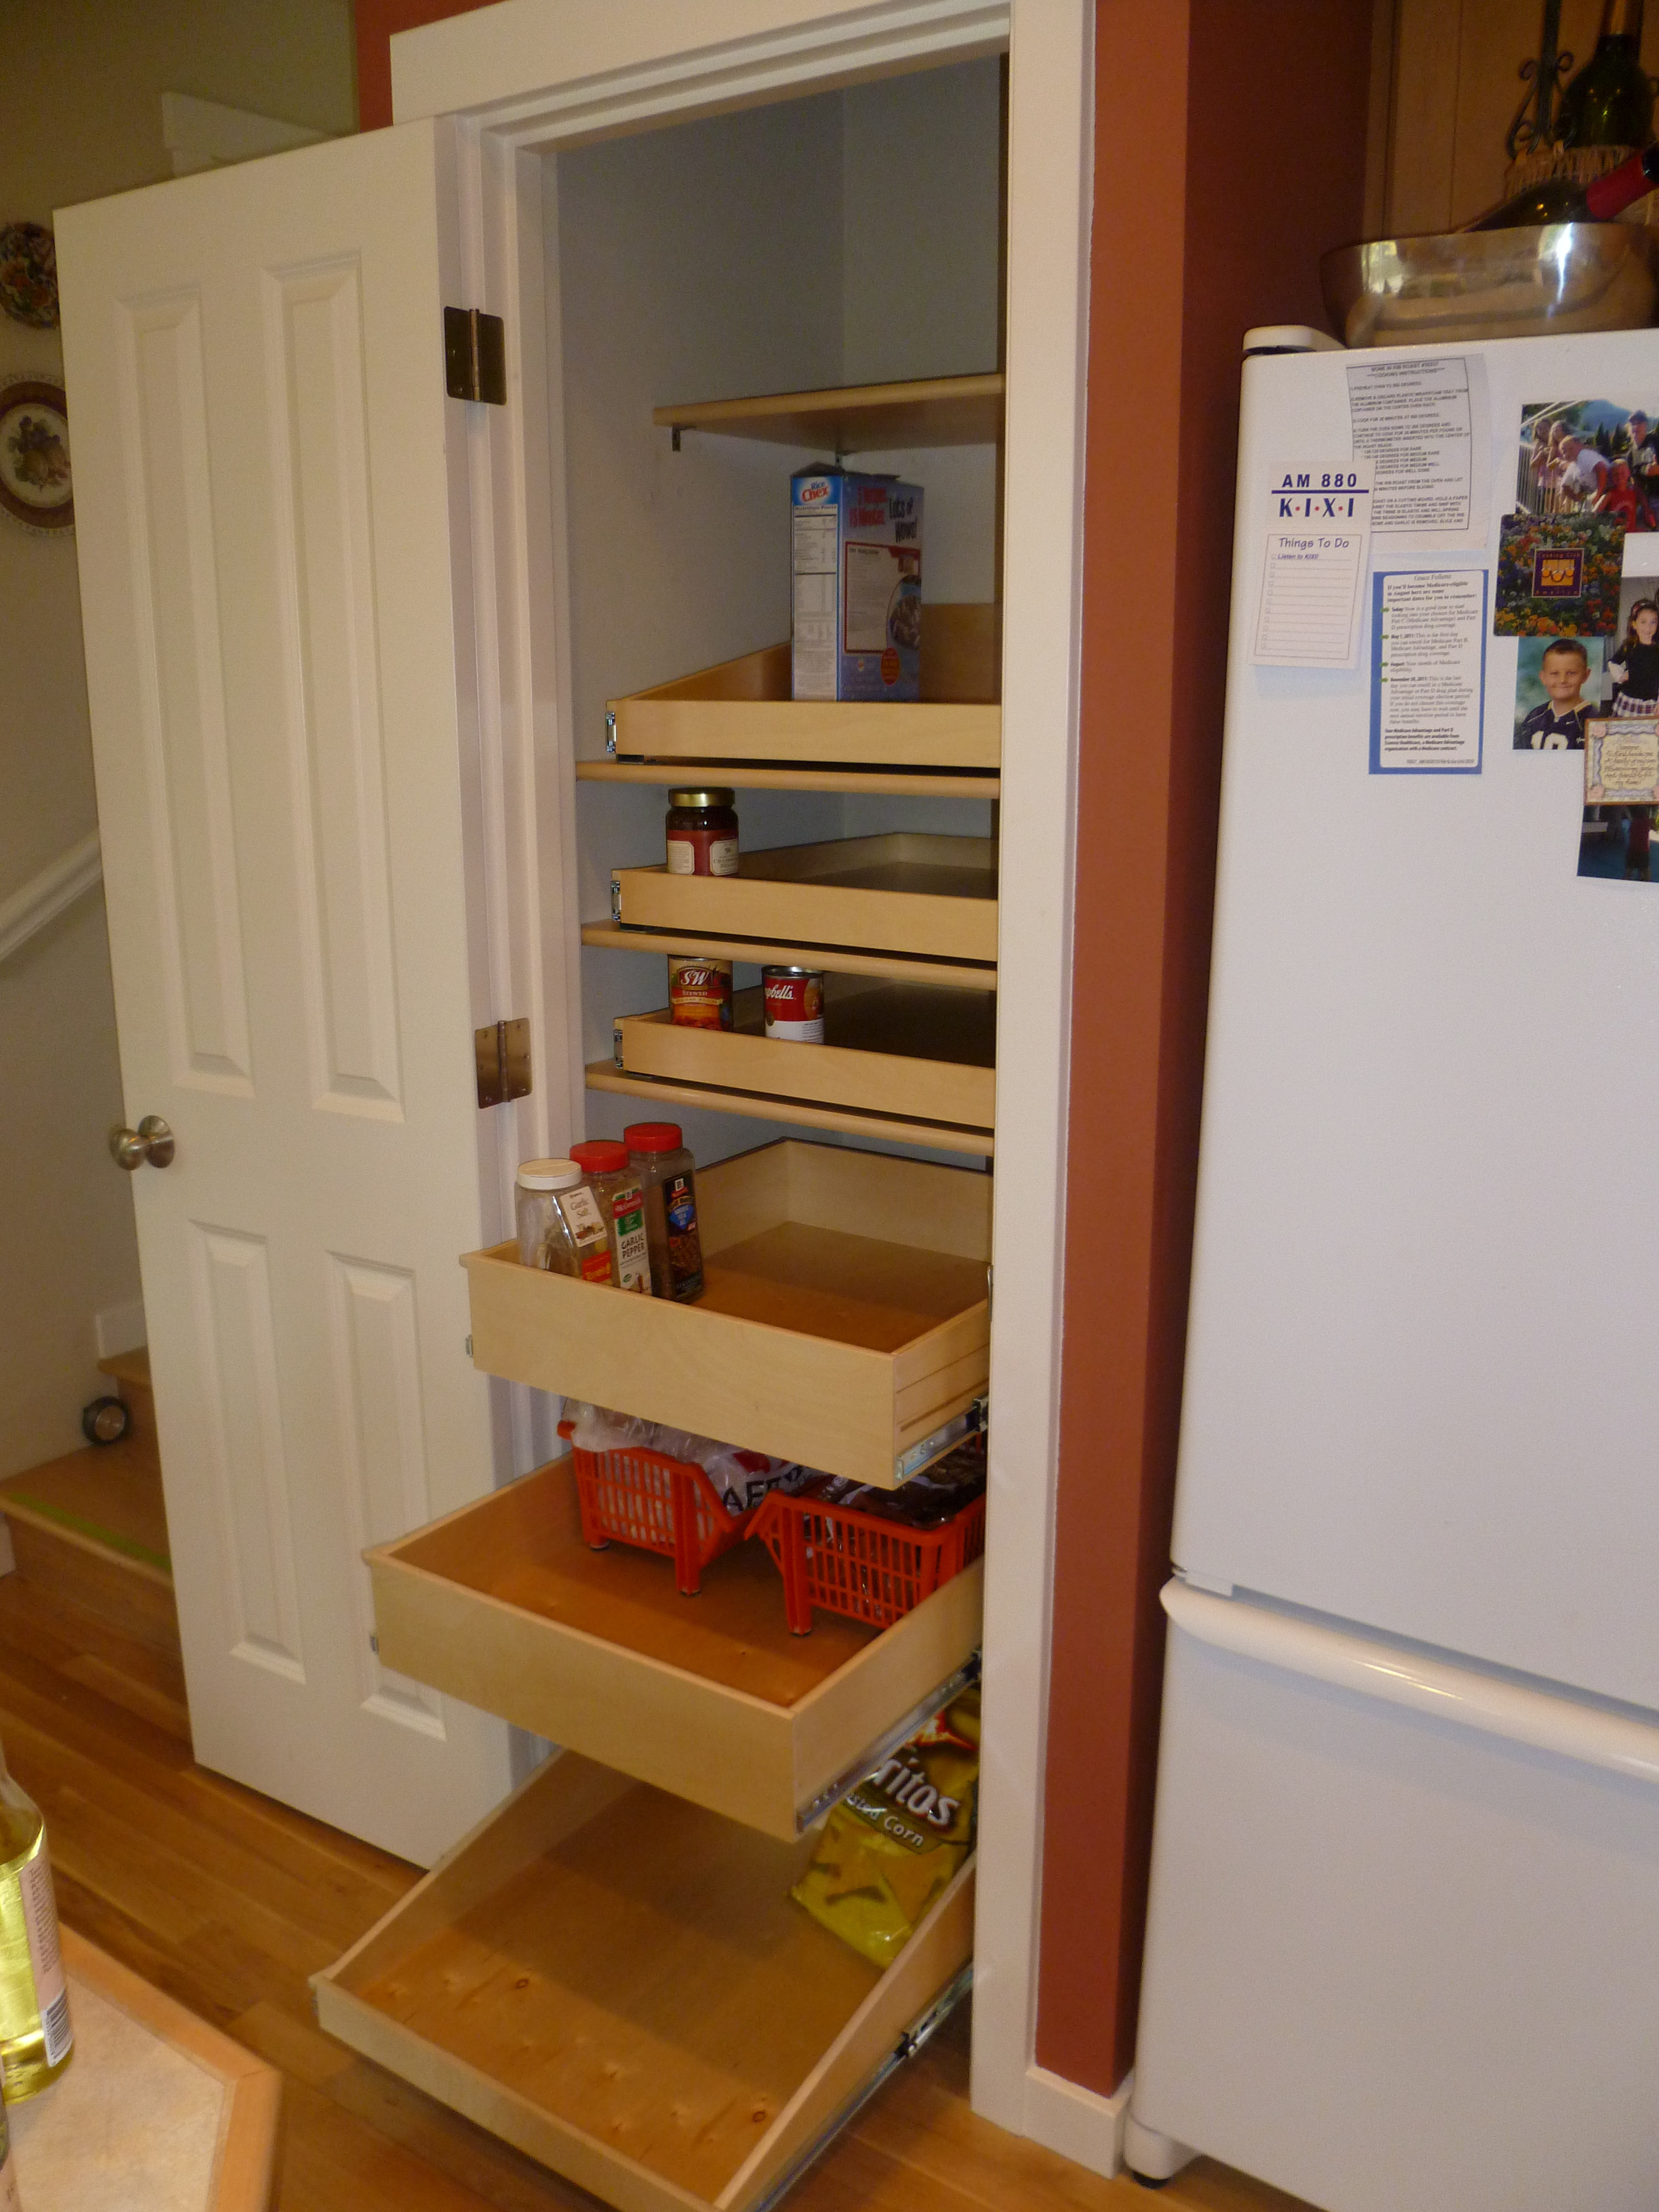 Best ideas about Pull Out Drawers For Pantry . Save or Pin Monterey pull out pantry Now.